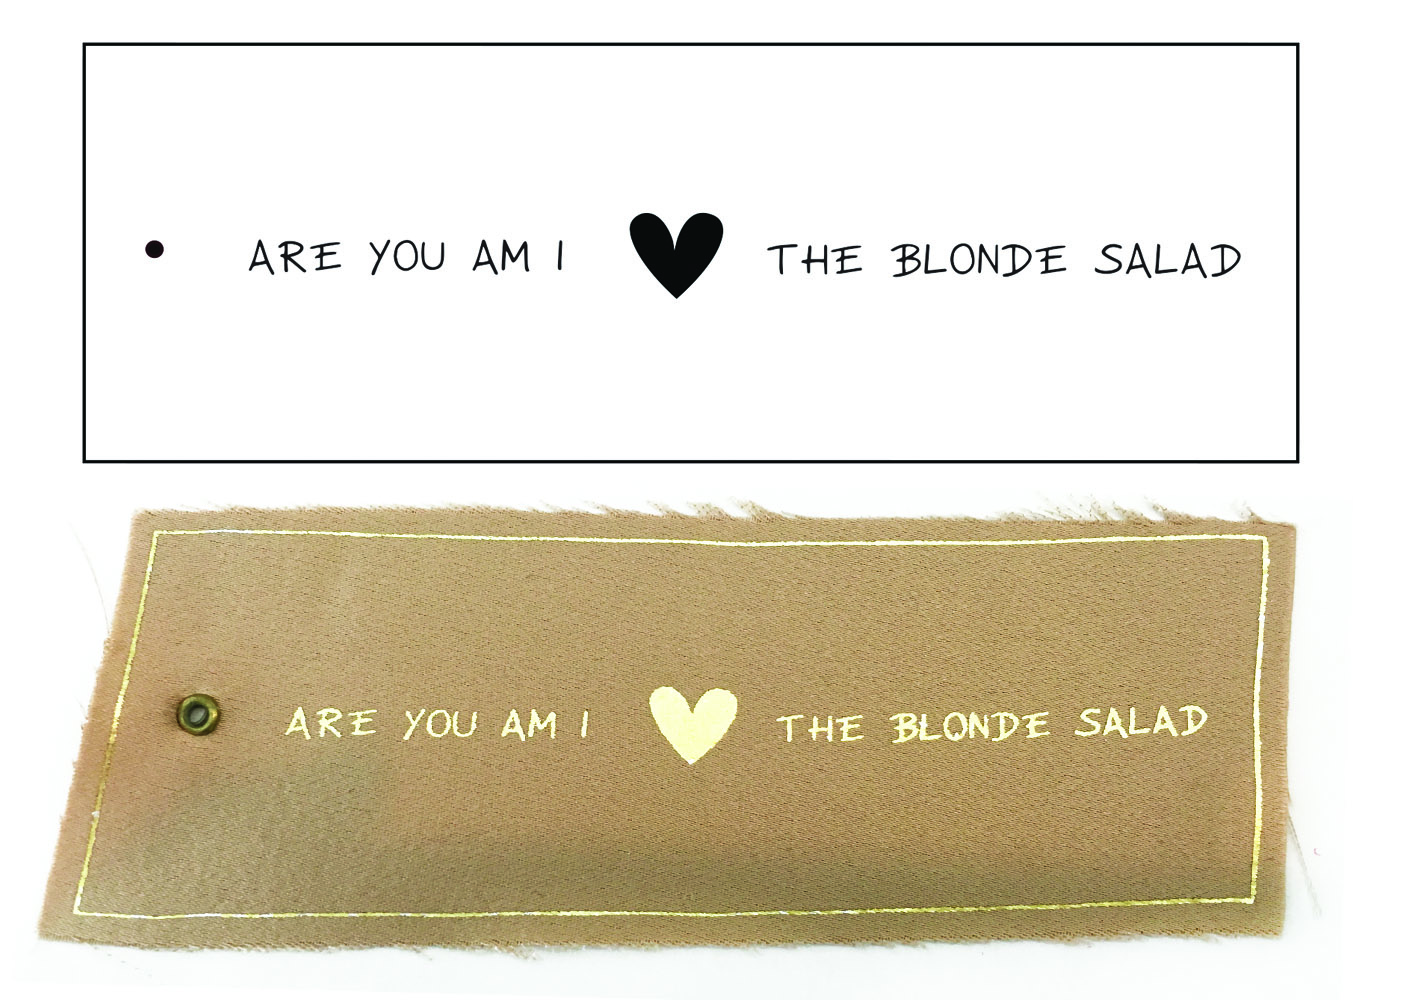 ayai x blonde salad tag.jpg